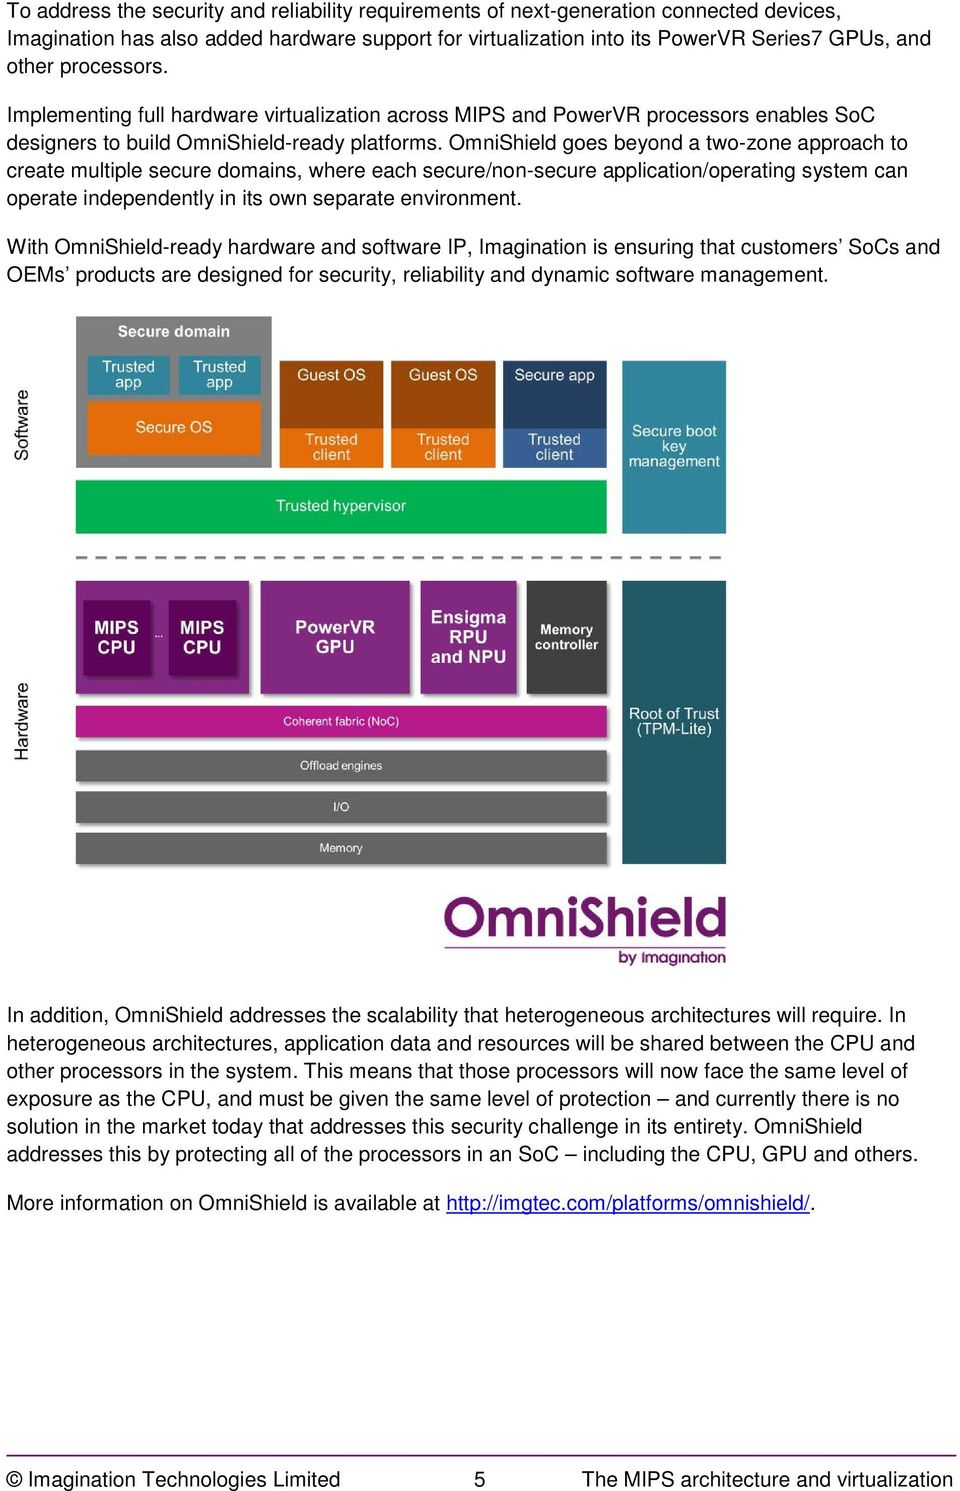 OmniShield goes beyond a two-zone approach to create multiple secure domains, where each secure/non-secure application/operating system can operate independently in its own separate environment.